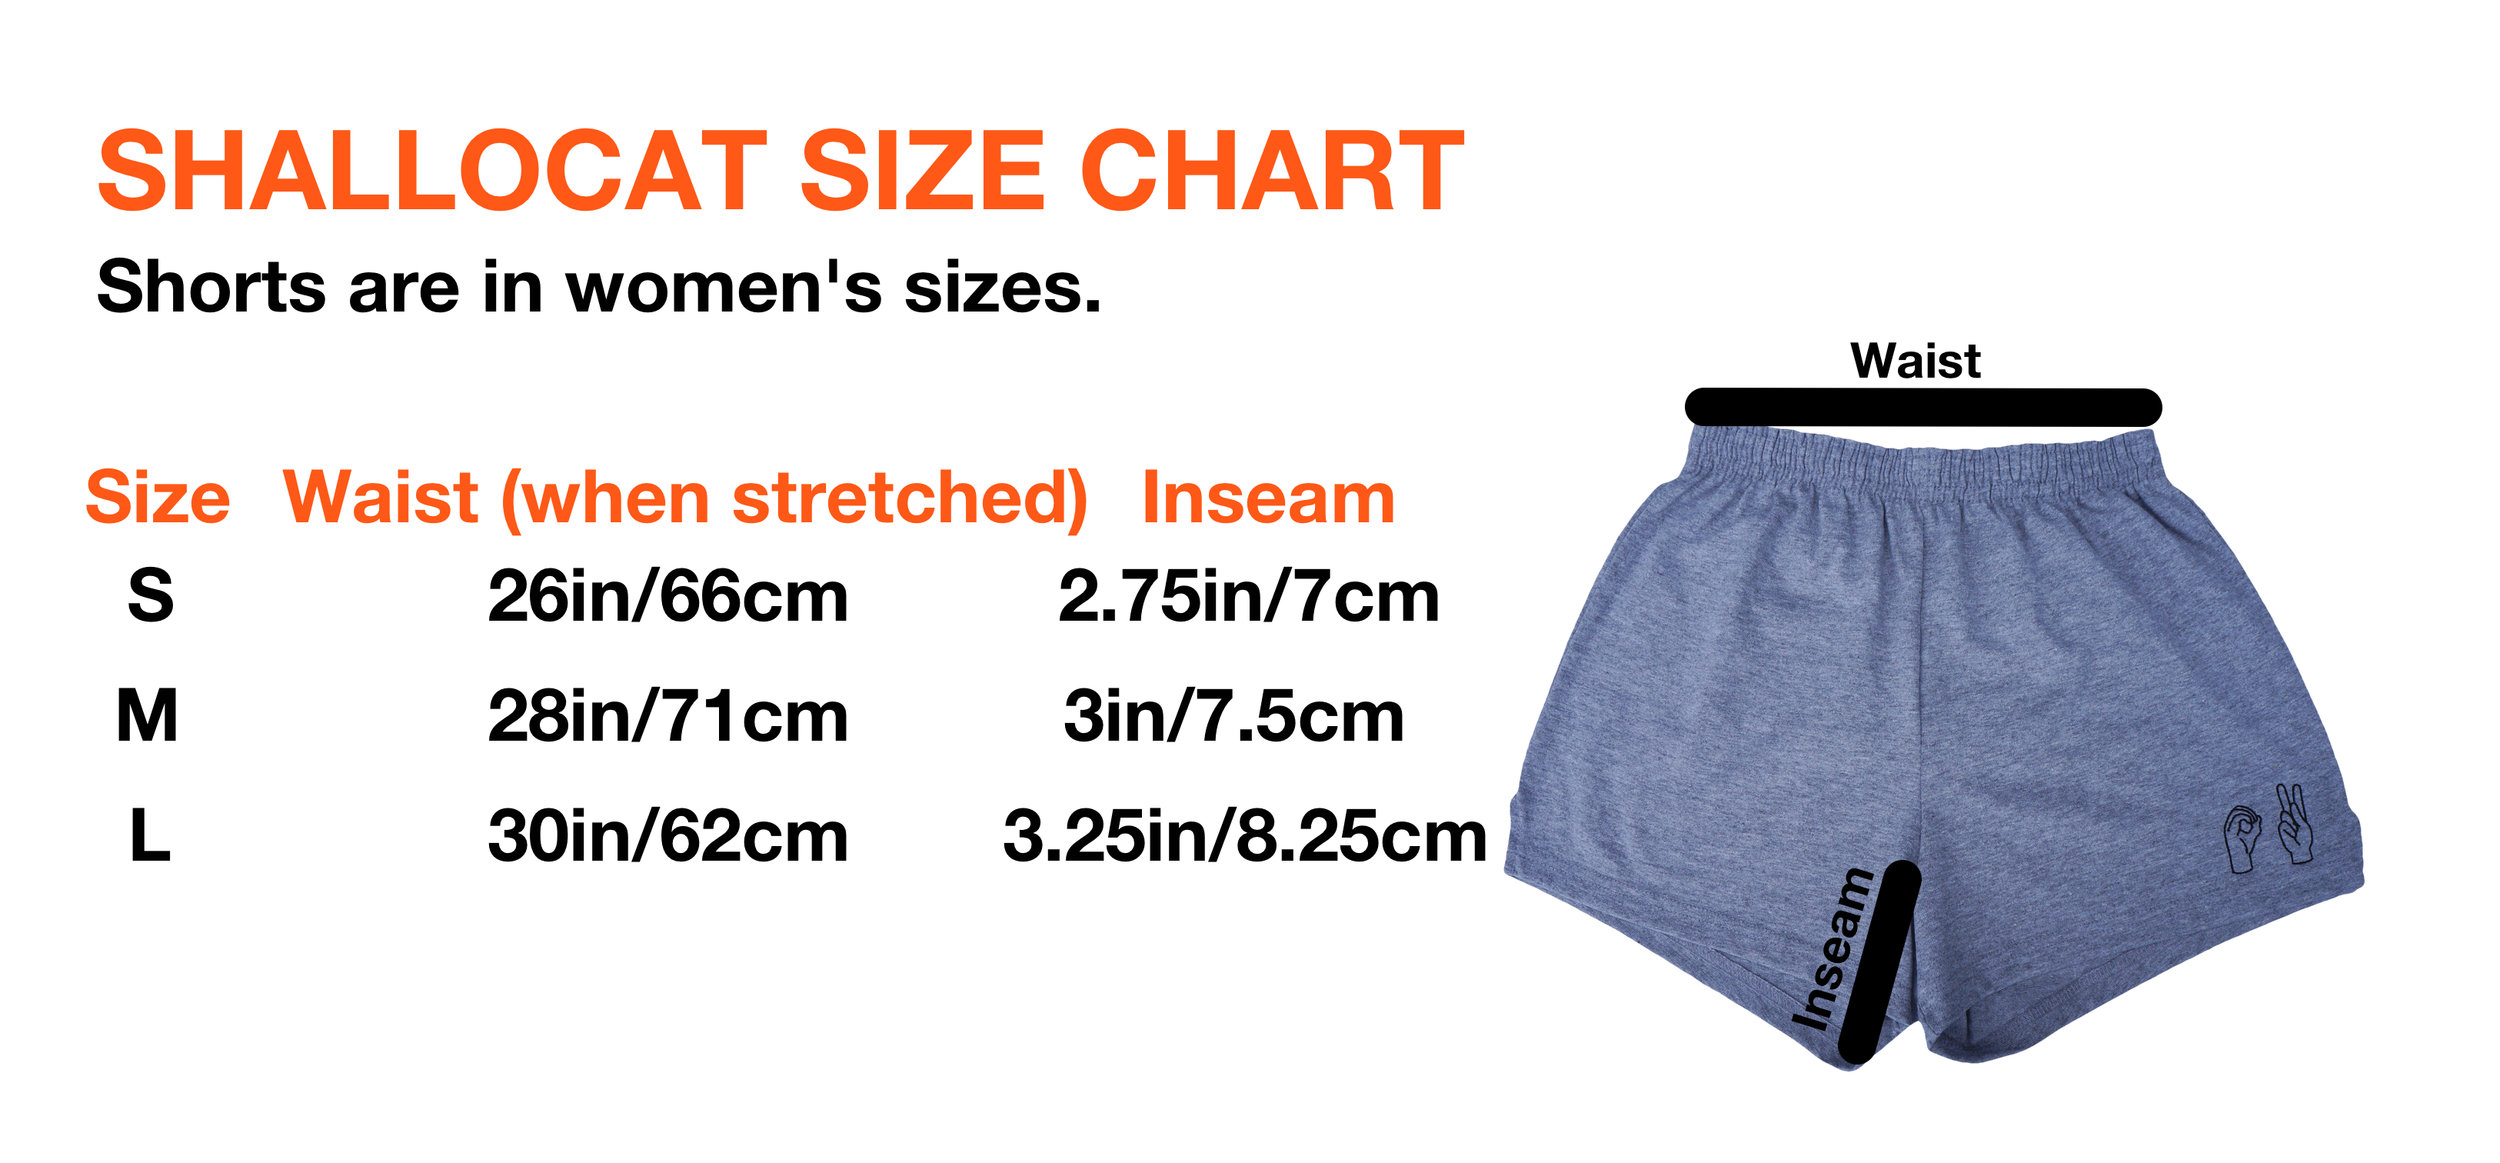 size chart for shorts.jpg